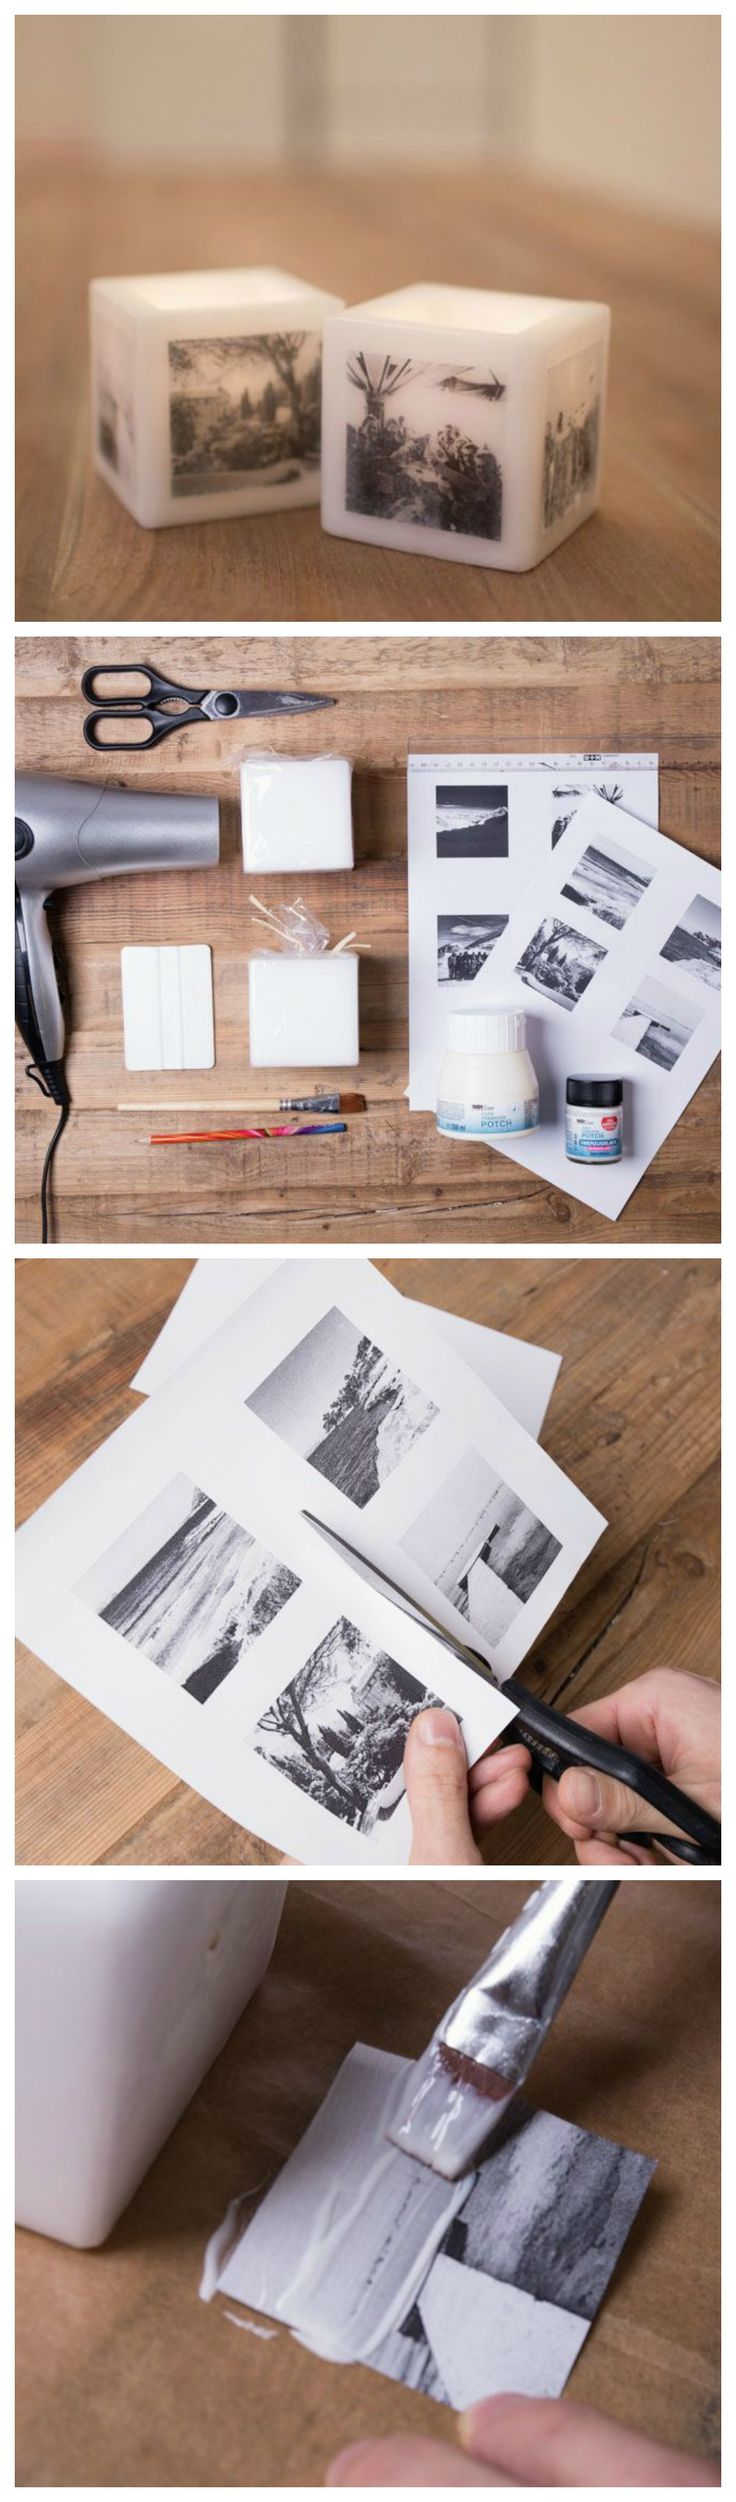 How to print photos on a candle